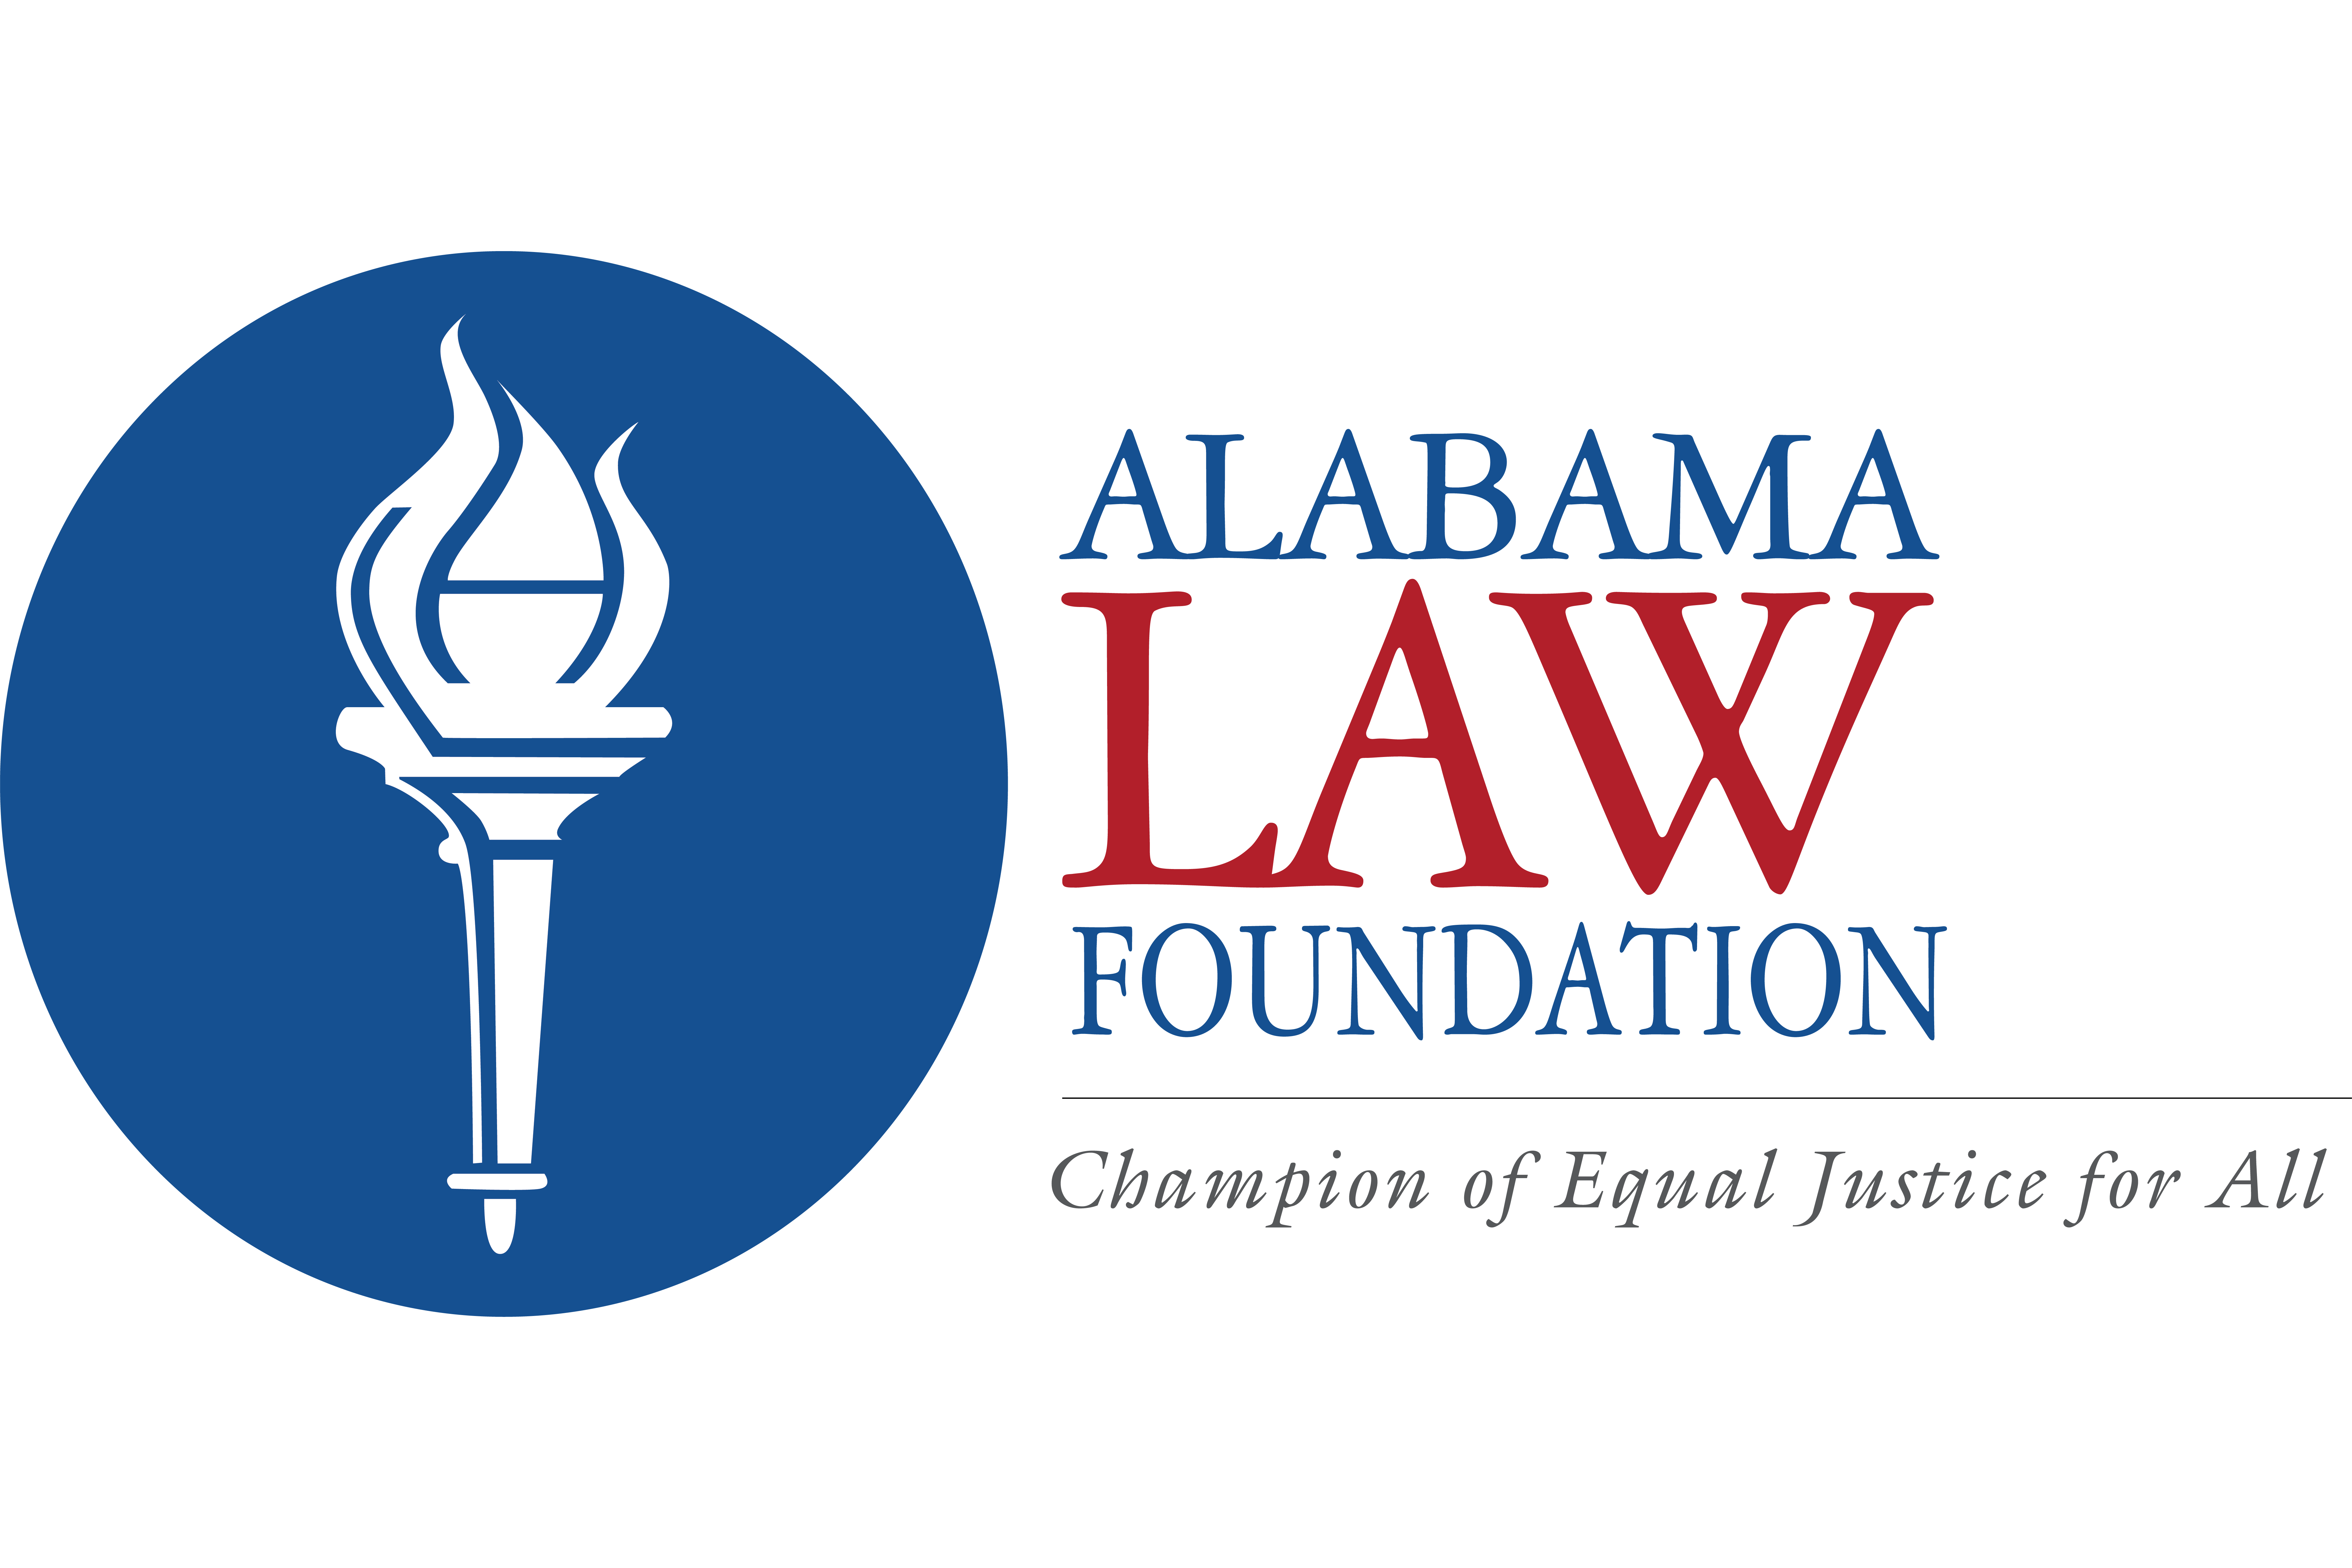 https://iolta.org/wp-content/uploads/2019-ALAW-LOGO-4-COLOR-TYPE-CONVERTED.png